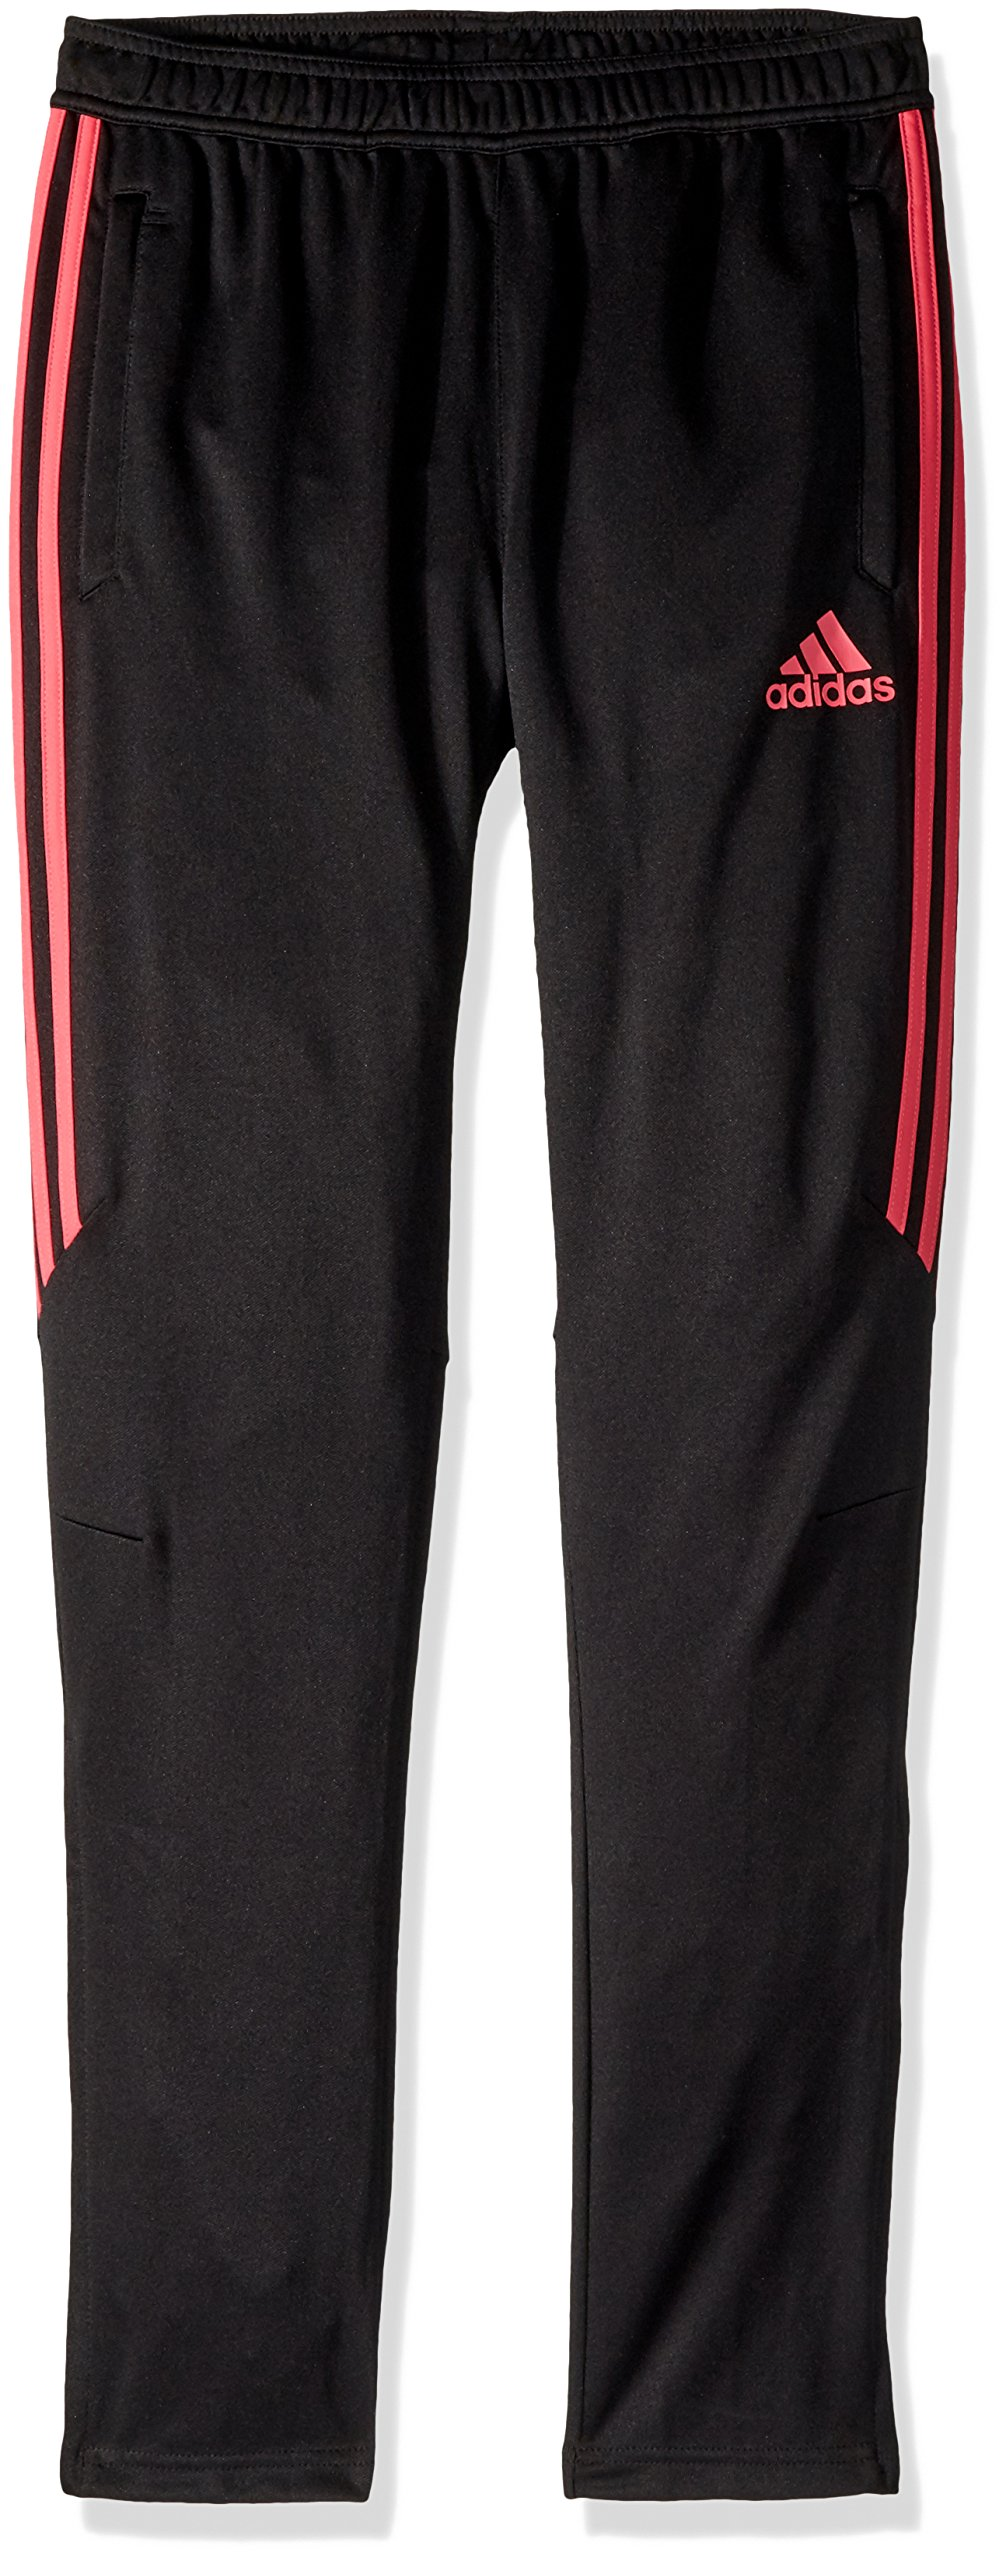 adidas Youth Soccer Tiro 17 Training Pants, Black/Real Pink, XX-Small